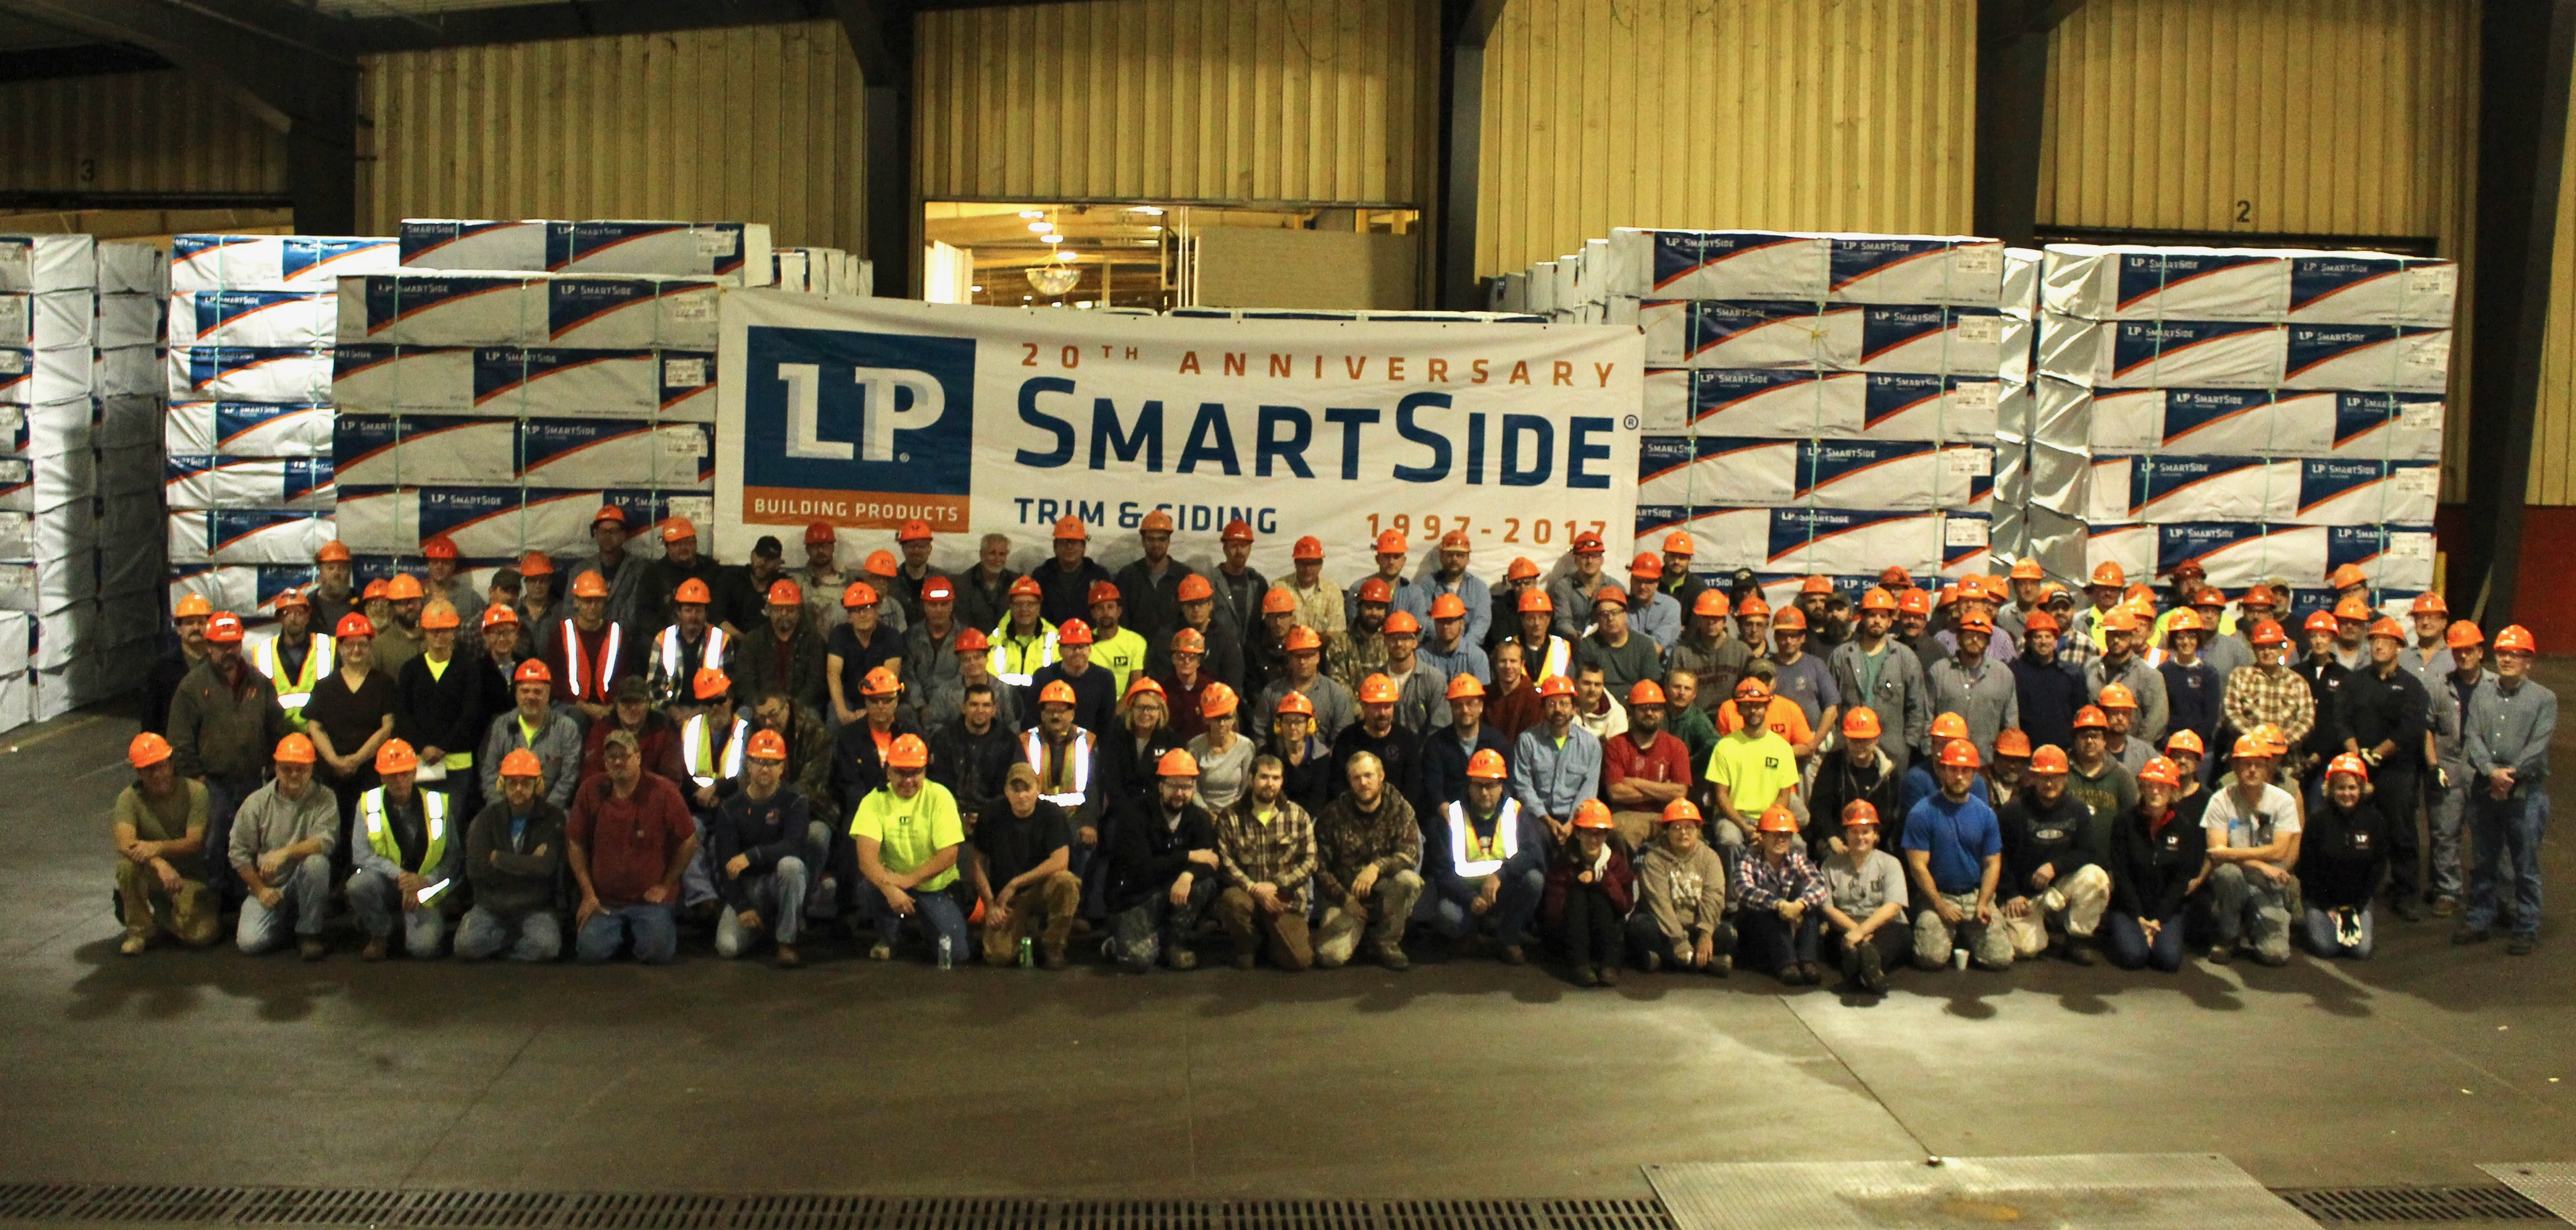 LP Celebrates the 20th Anniversary of LP SmartSide